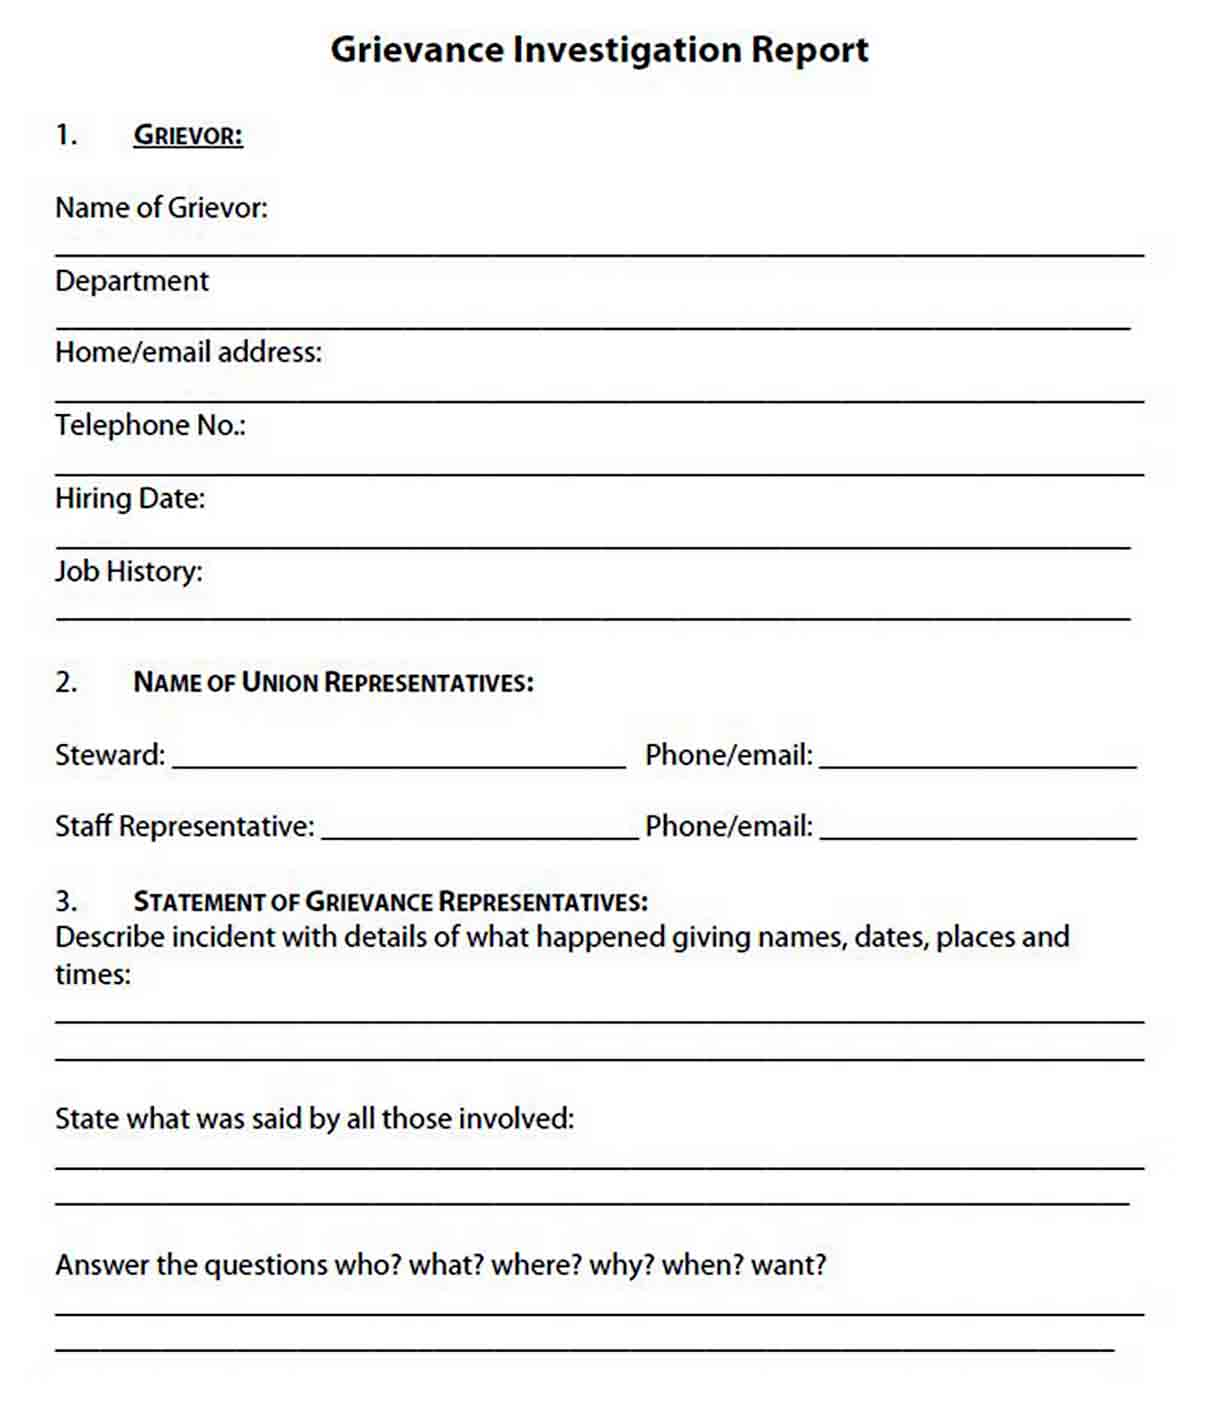 Grievance Investigation Report Template sample 1